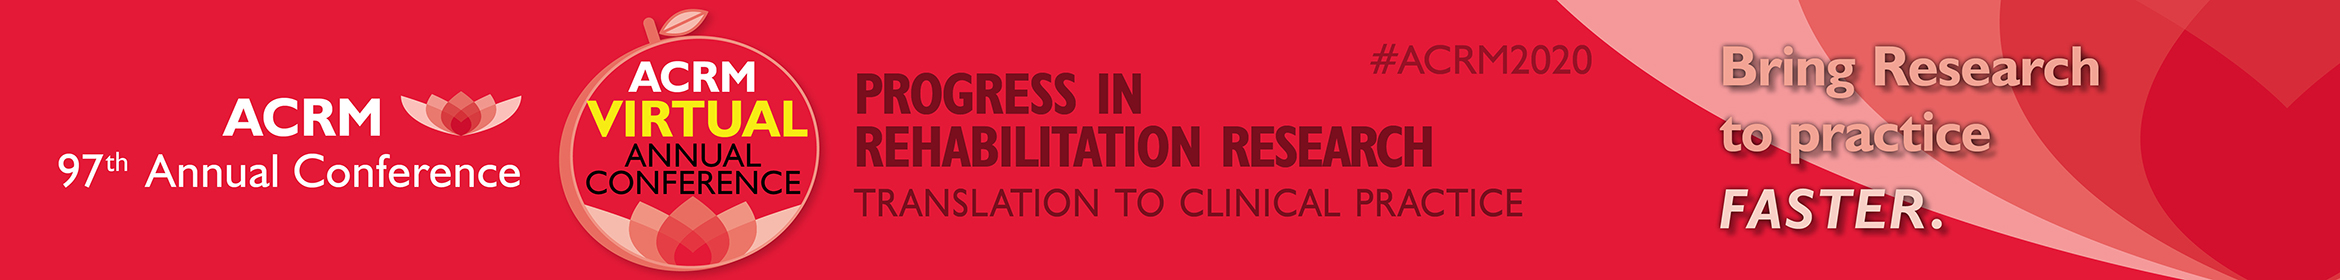 ACRM 97th Annual VIRTUAL Conference Main banner